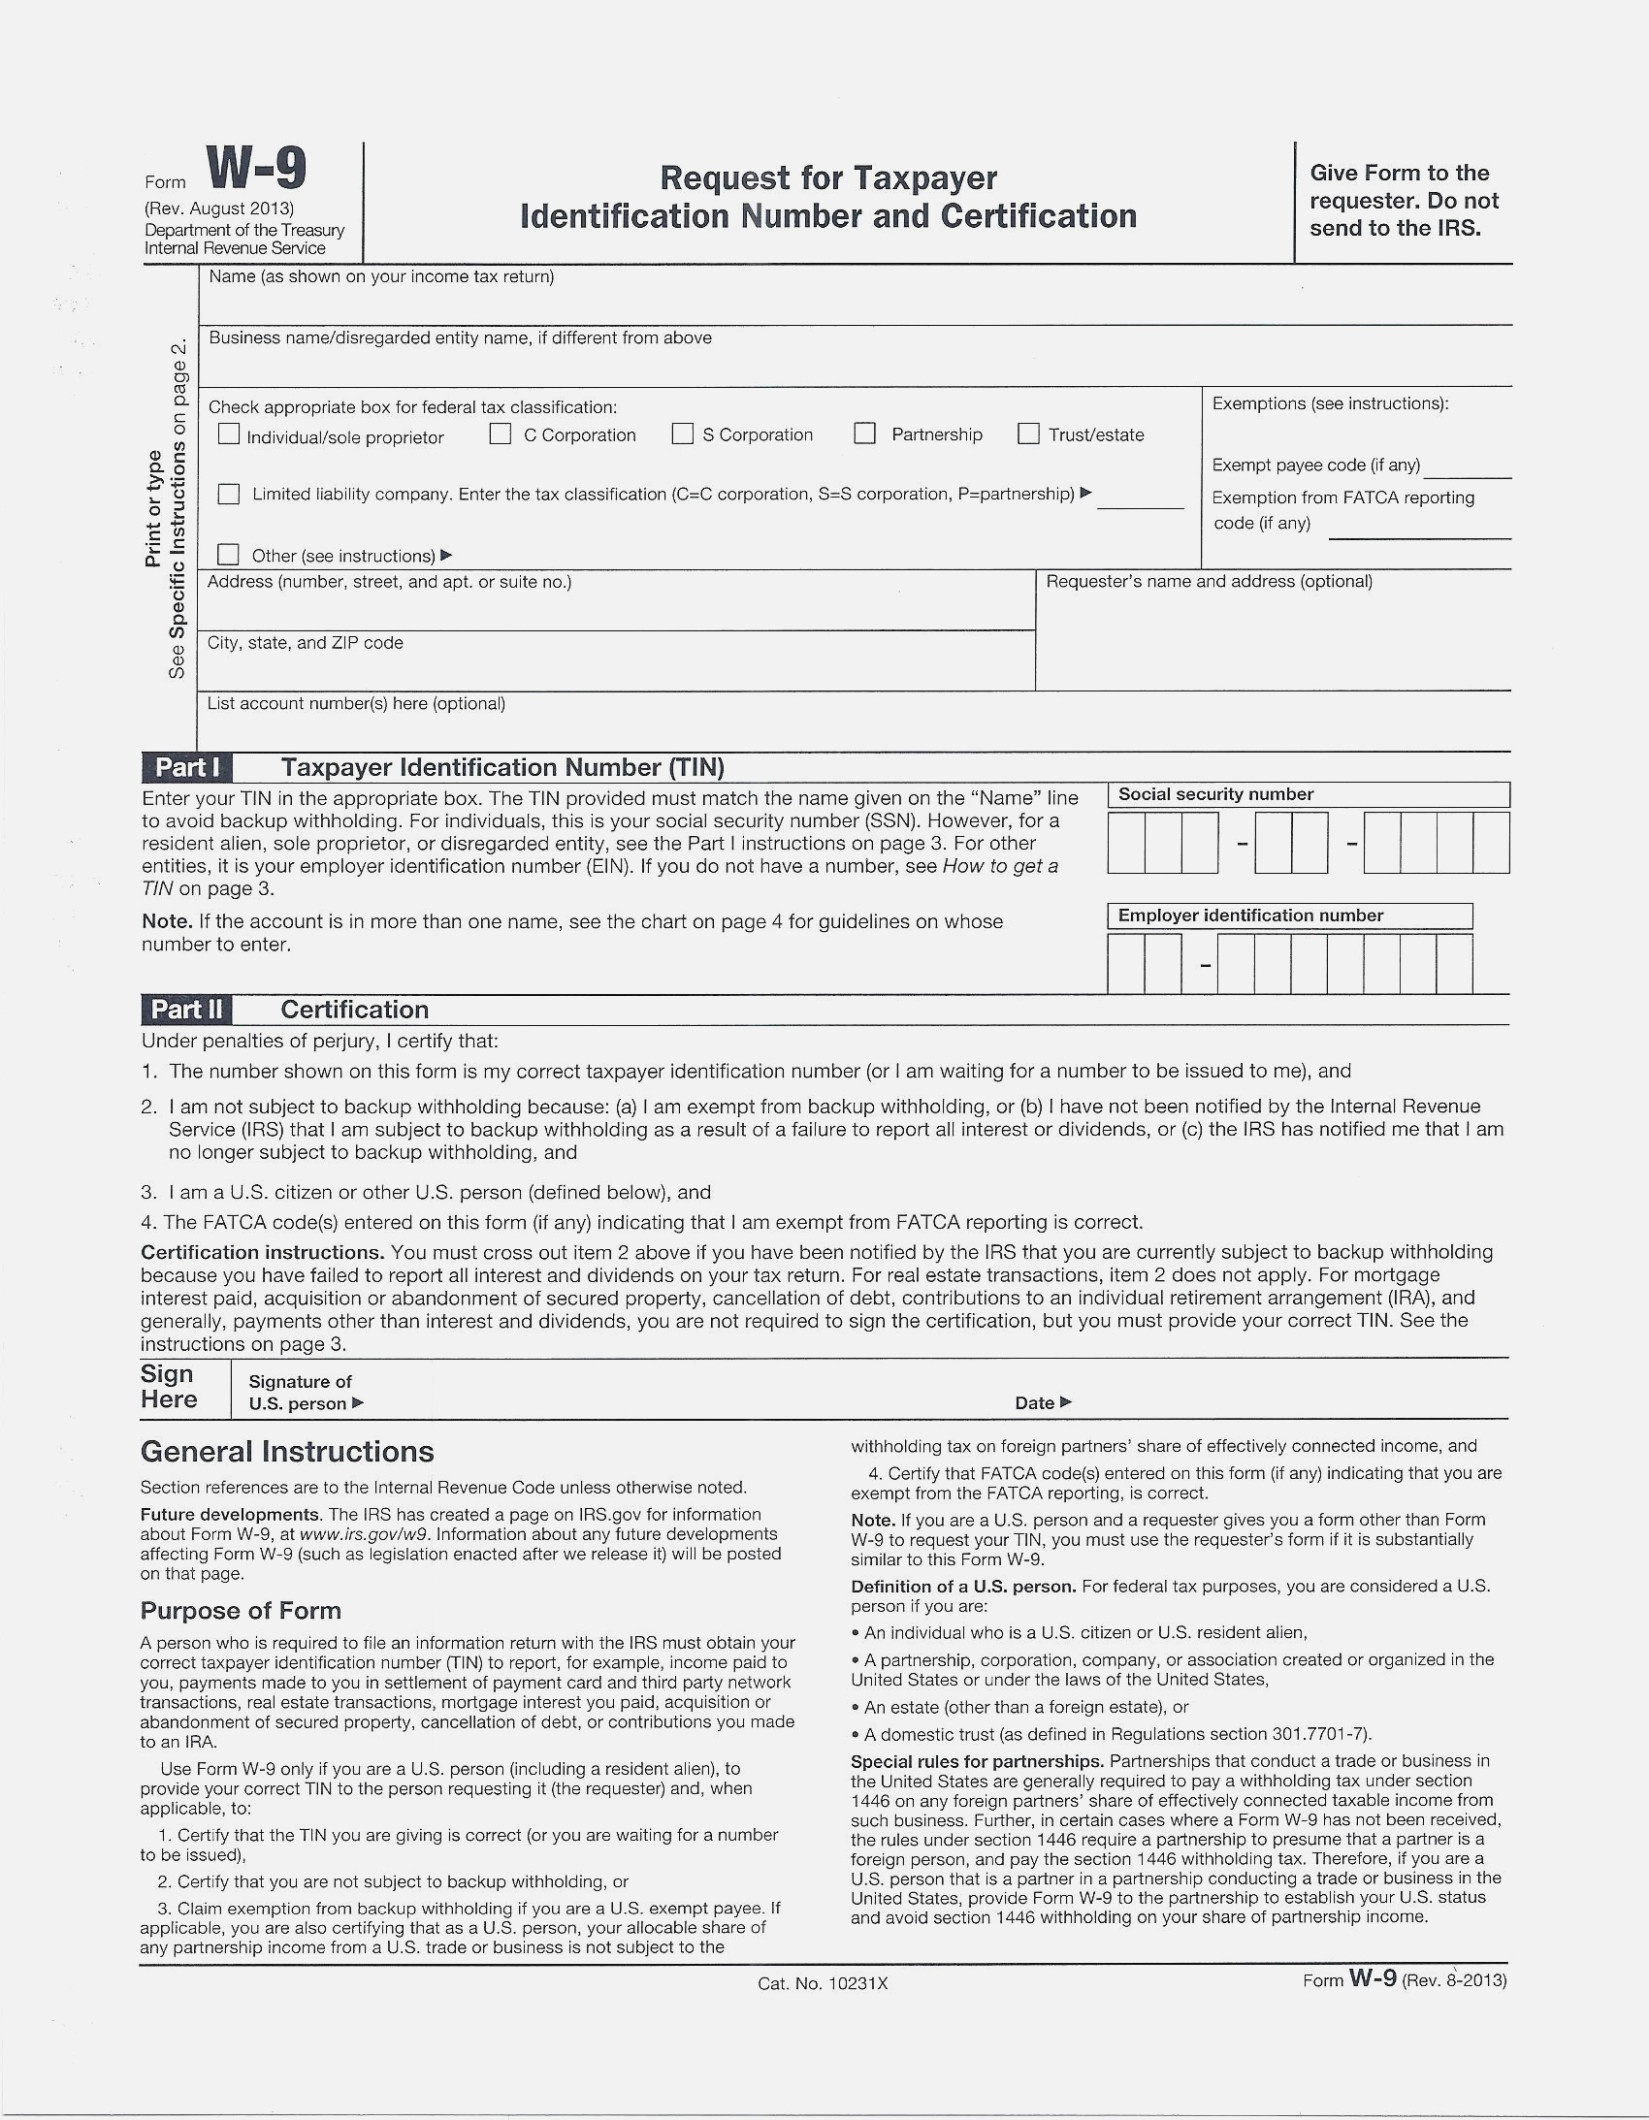 Fresh Free Printable W 14 Form | Downloadtarget – W9 Form Printable - W9 Form Printable 2017 Free